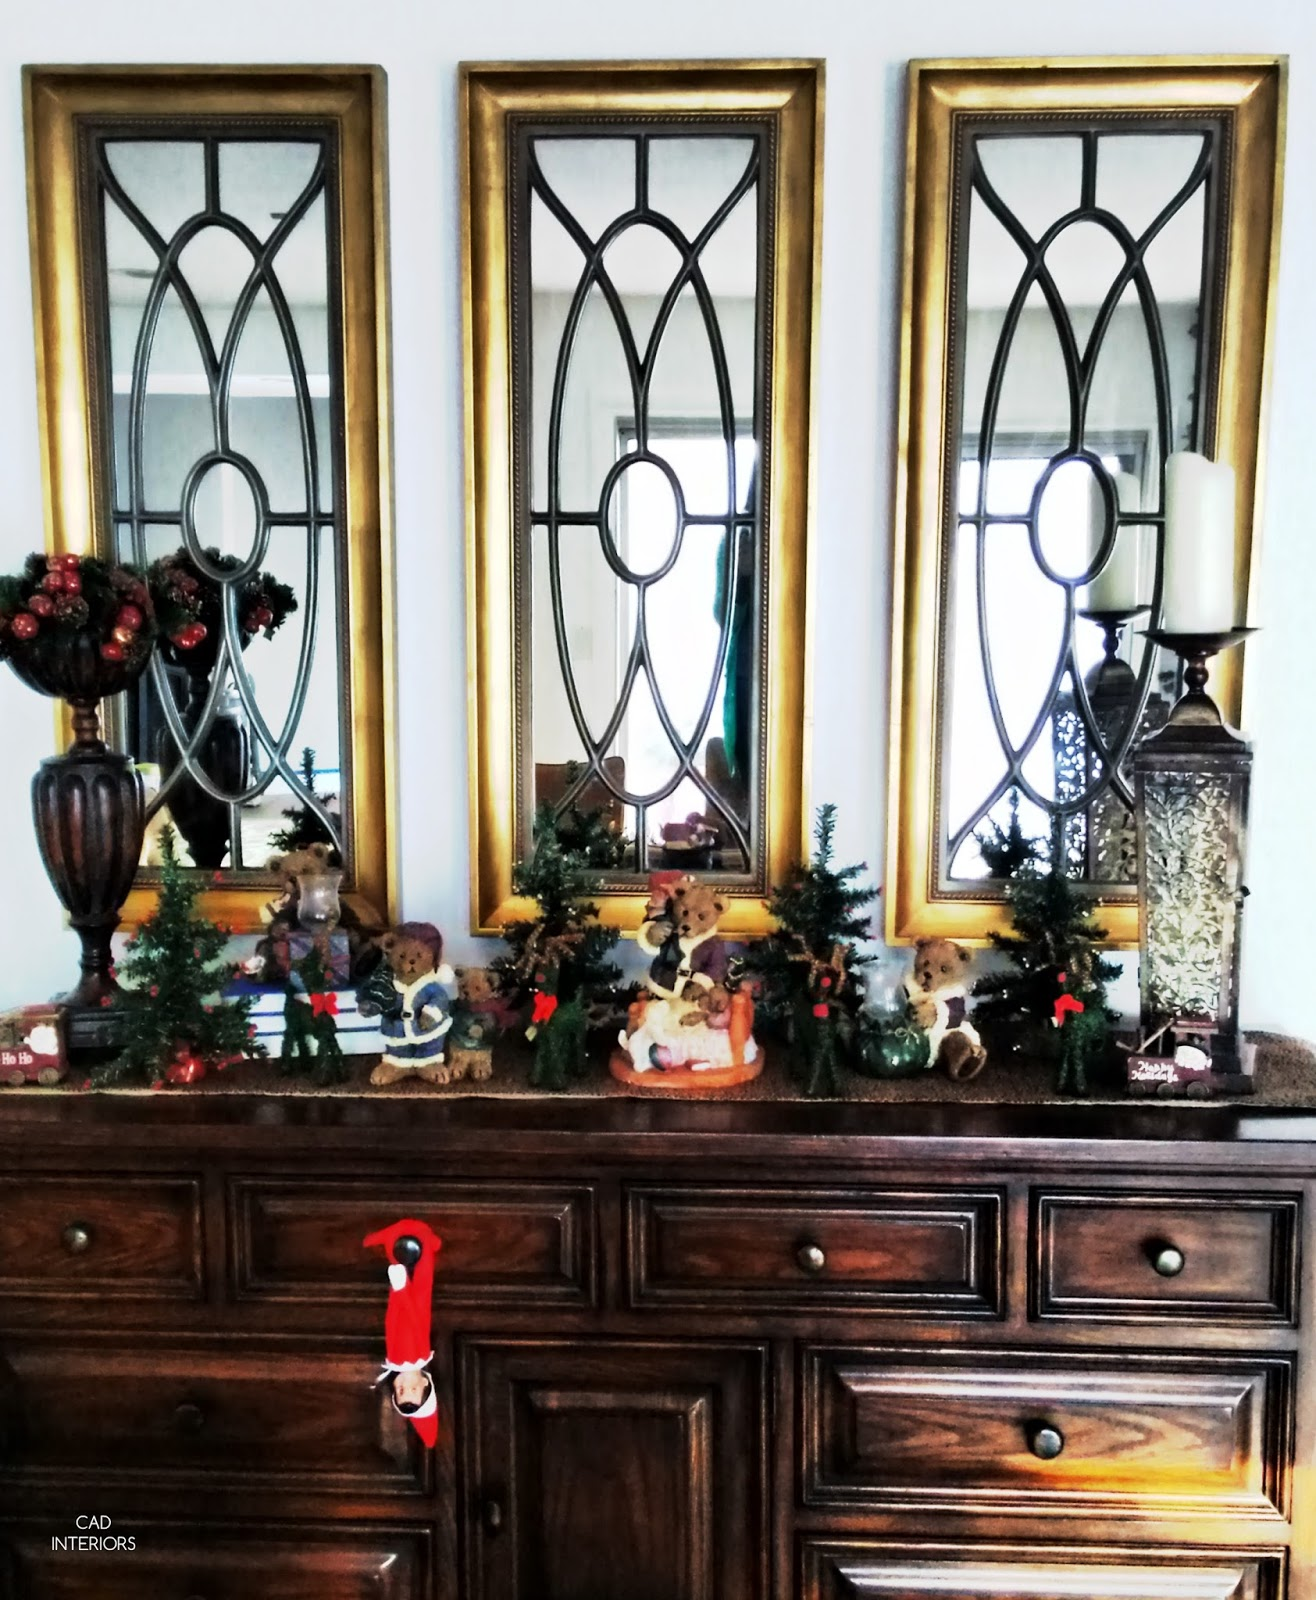 Christmas holiday decorating traditional classic interior decorating trees bears reindeer